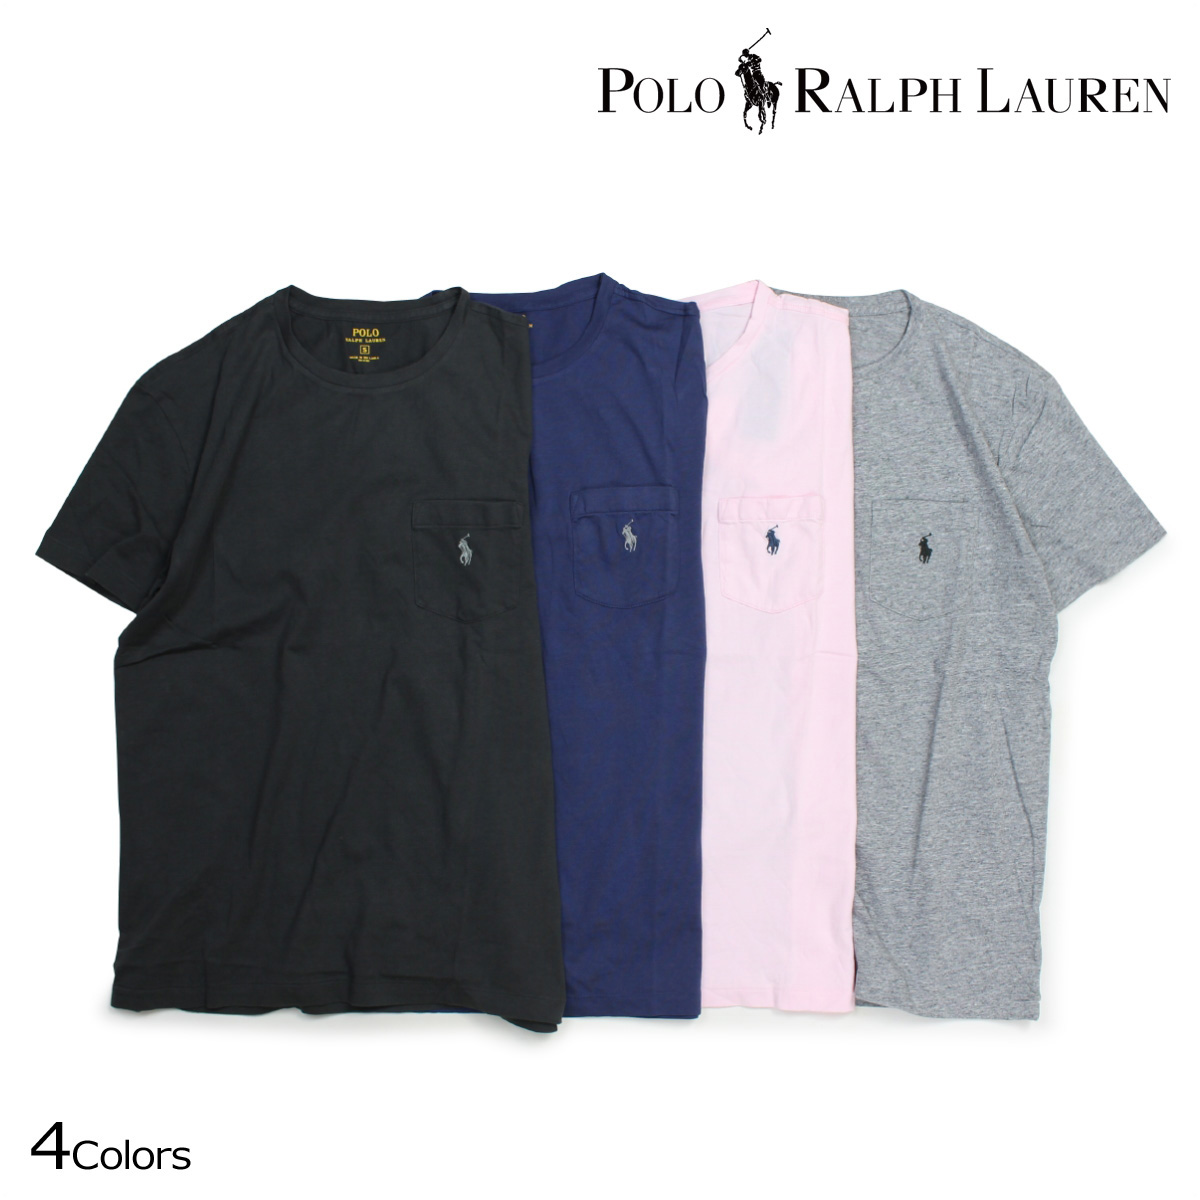 polo ralph lauren t shirts for men